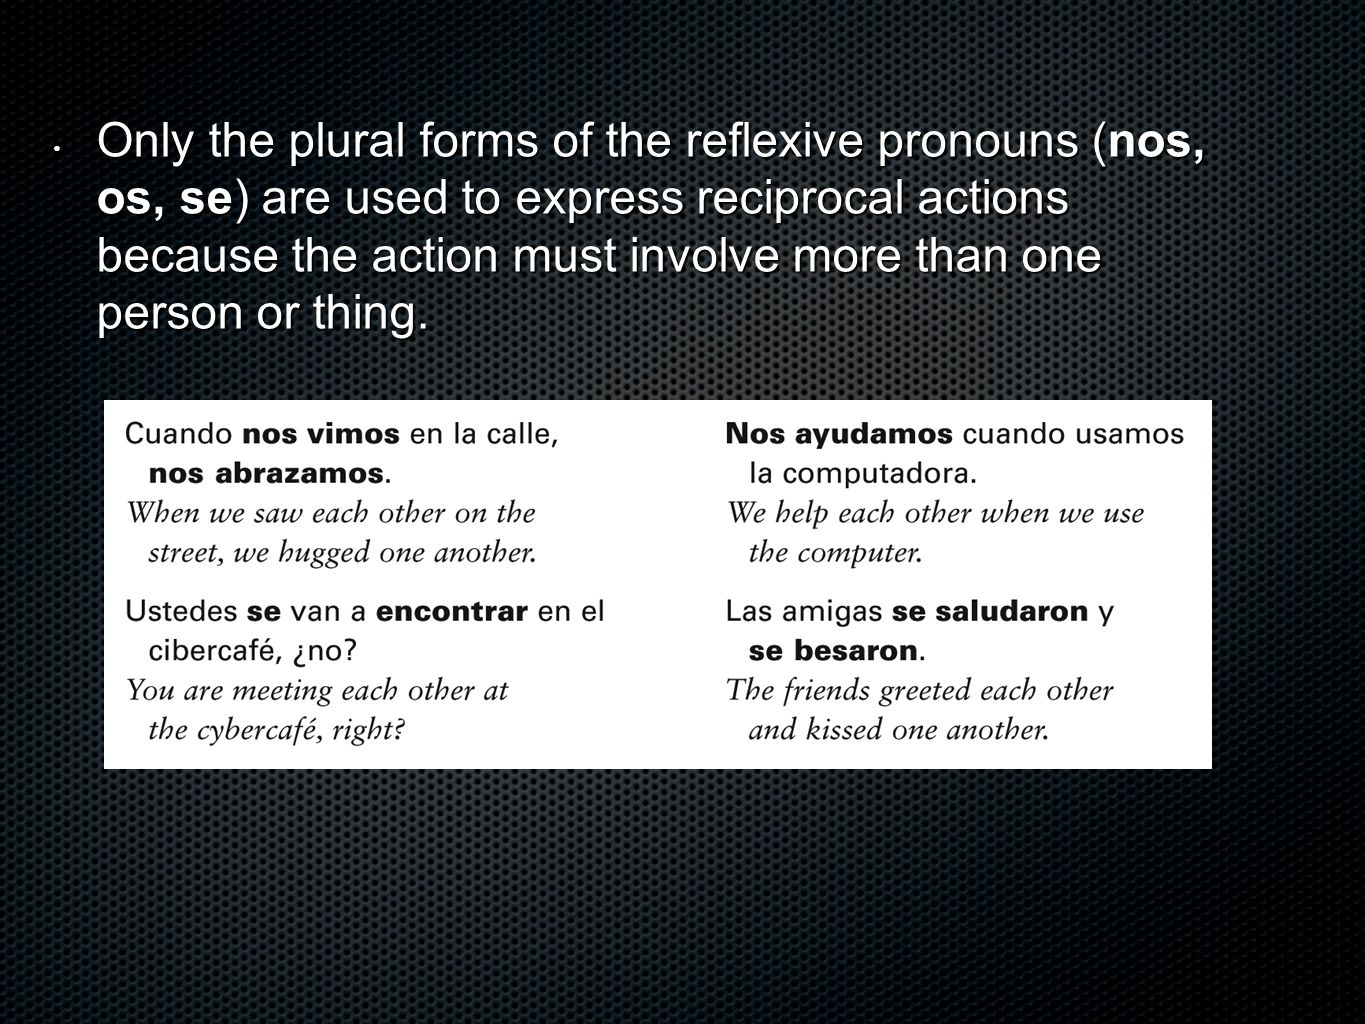 Only the plural forms of the reflexive pronouns (nos, os, se) are used to express reciprocal actions because the action must involve more than one person or thing.